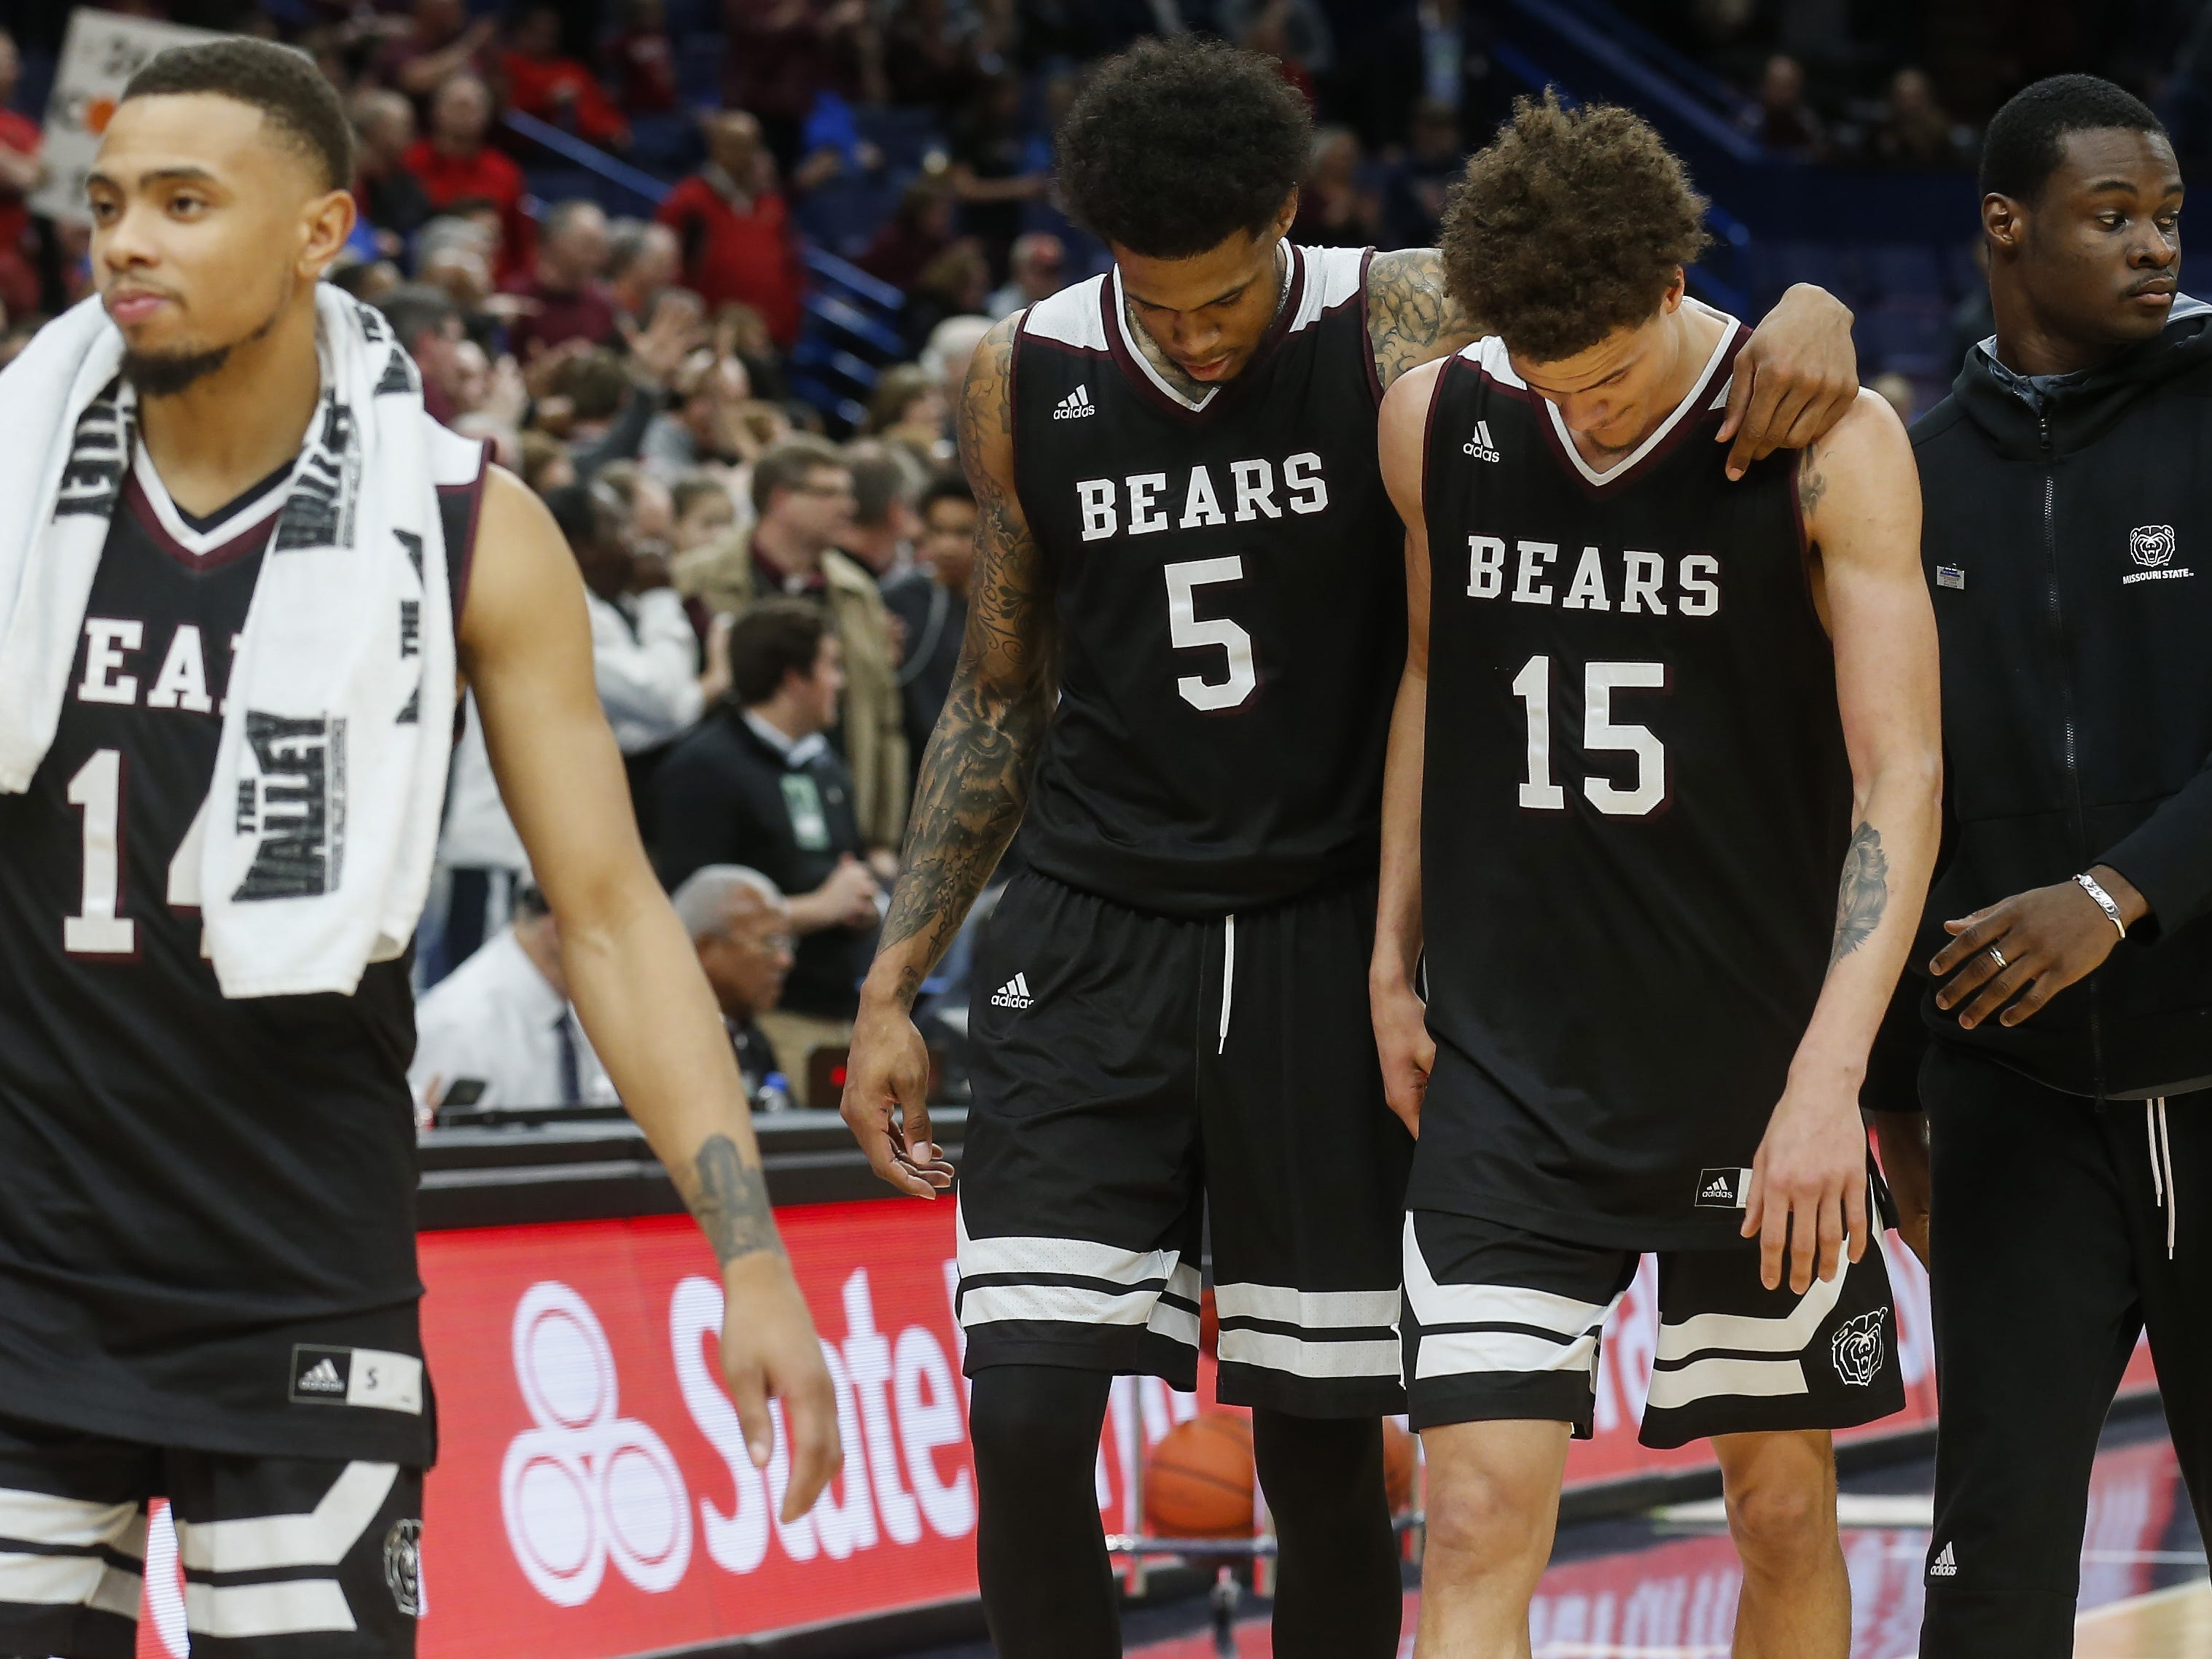 March 2: Missouri State basketball's season ends after a loss in the quarterfinal game against Southern Illinois 67-63 in the MVC Tournament at the Scottrade Center on Friday, March 2, 2018 in St. Louis.